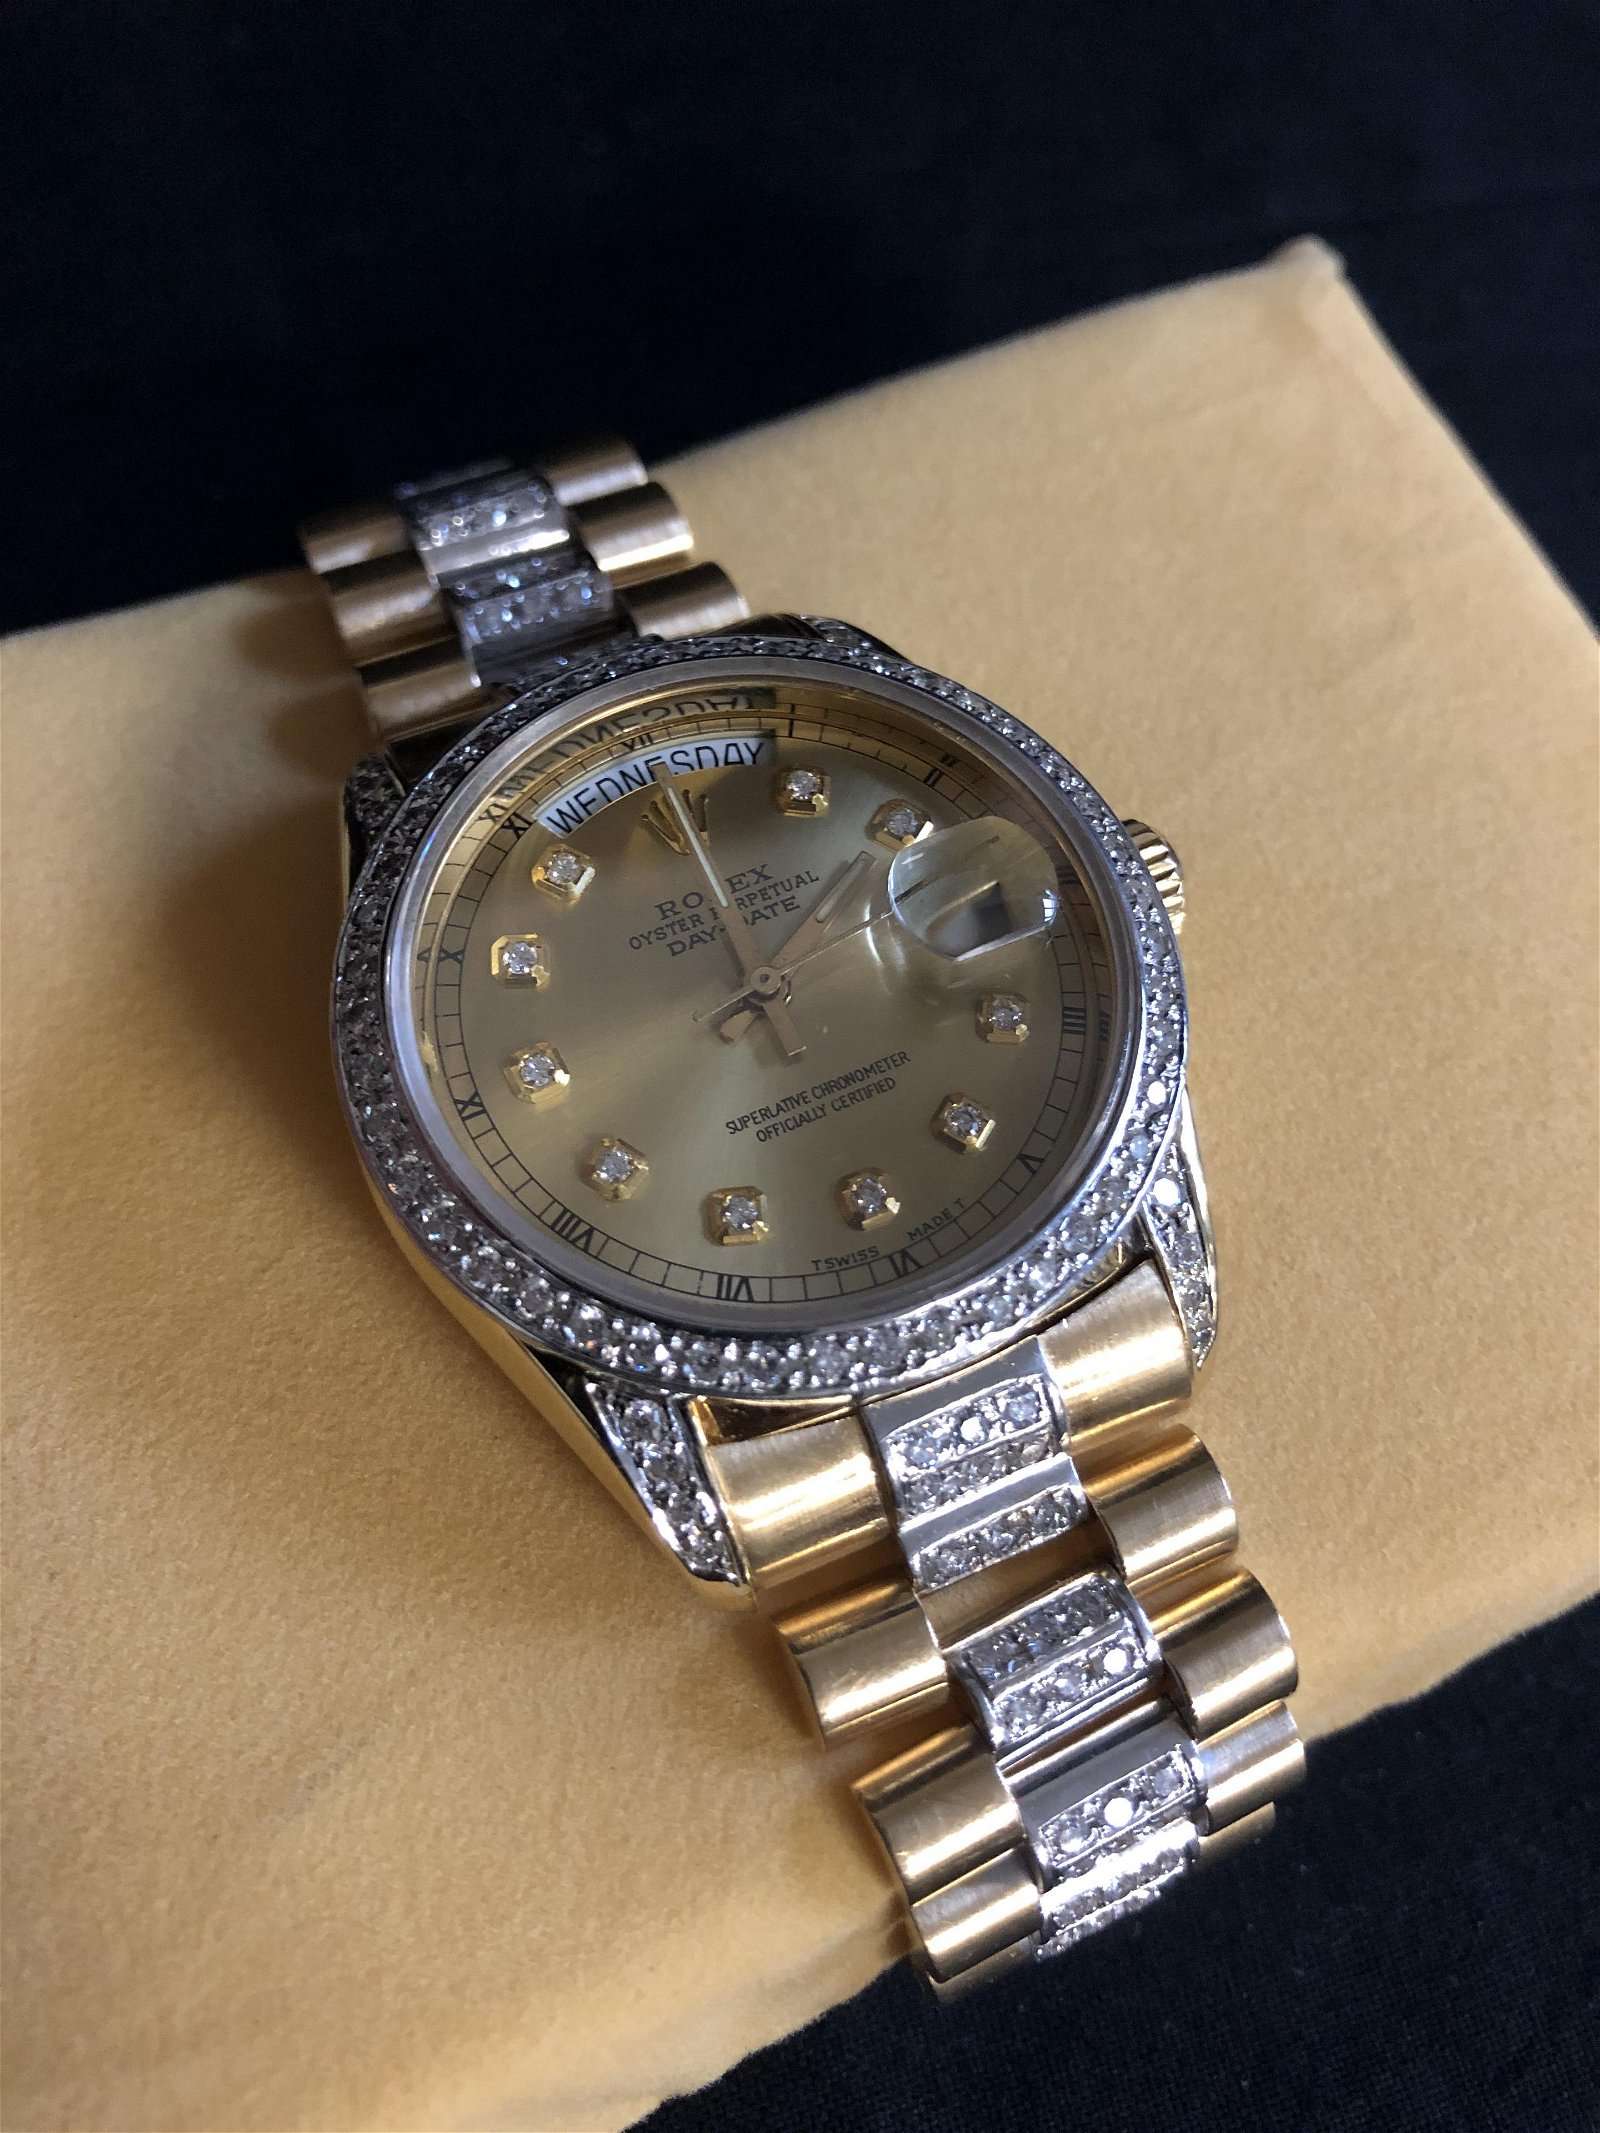 18K GOLD ROLEX OYSTER PERPETUAL DATE DIAMOND CRUSTED